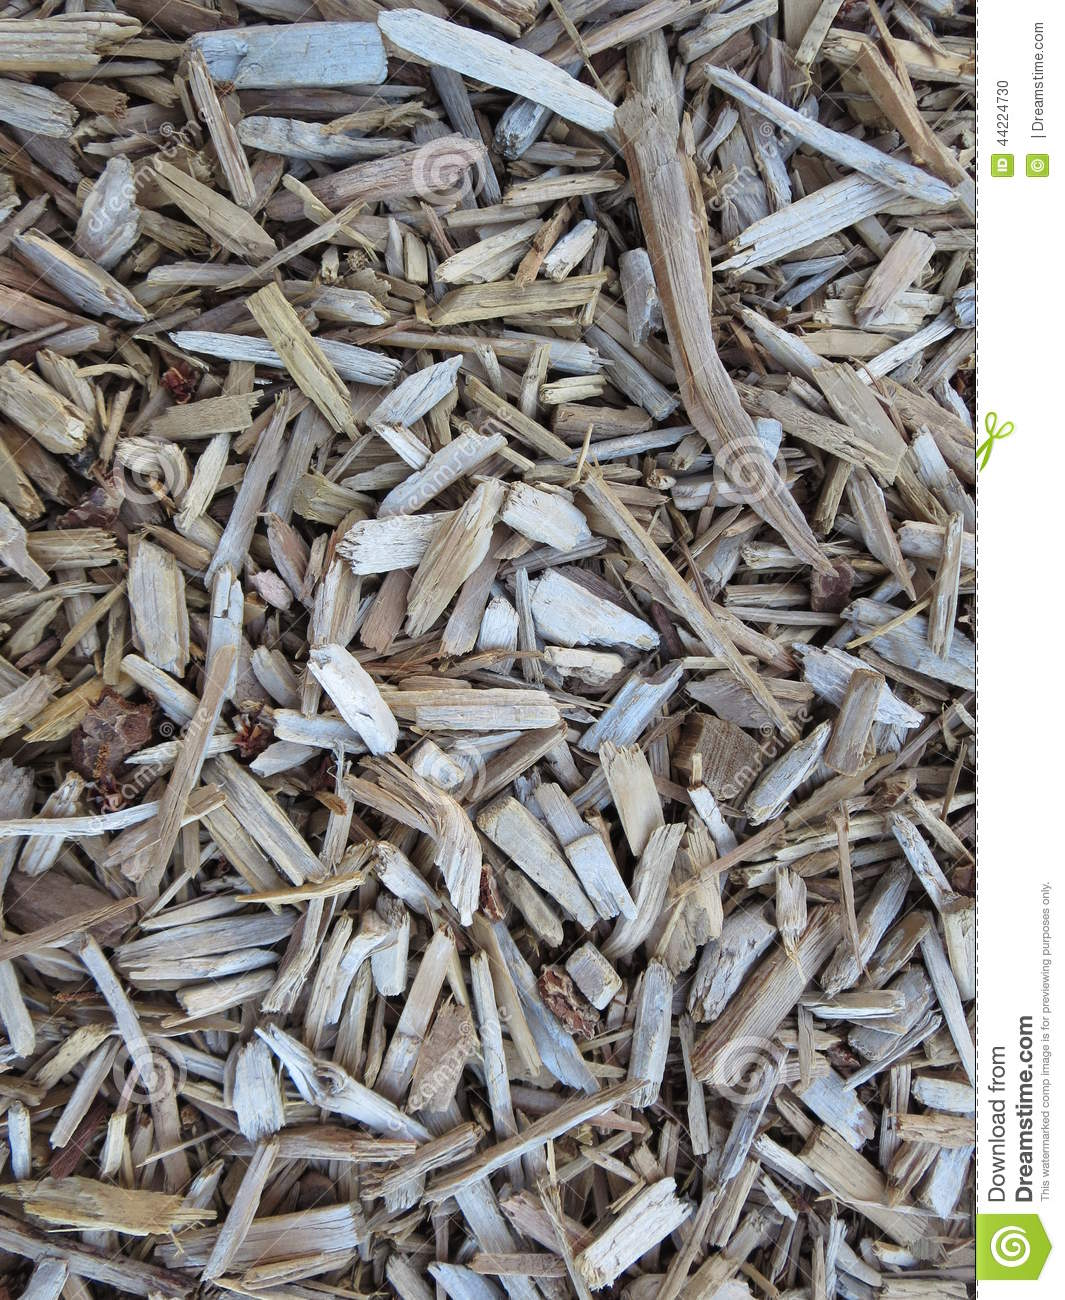 wood pieces used for garden mulch stock photo image 44224730. Black Bedroom Furniture Sets. Home Design Ideas